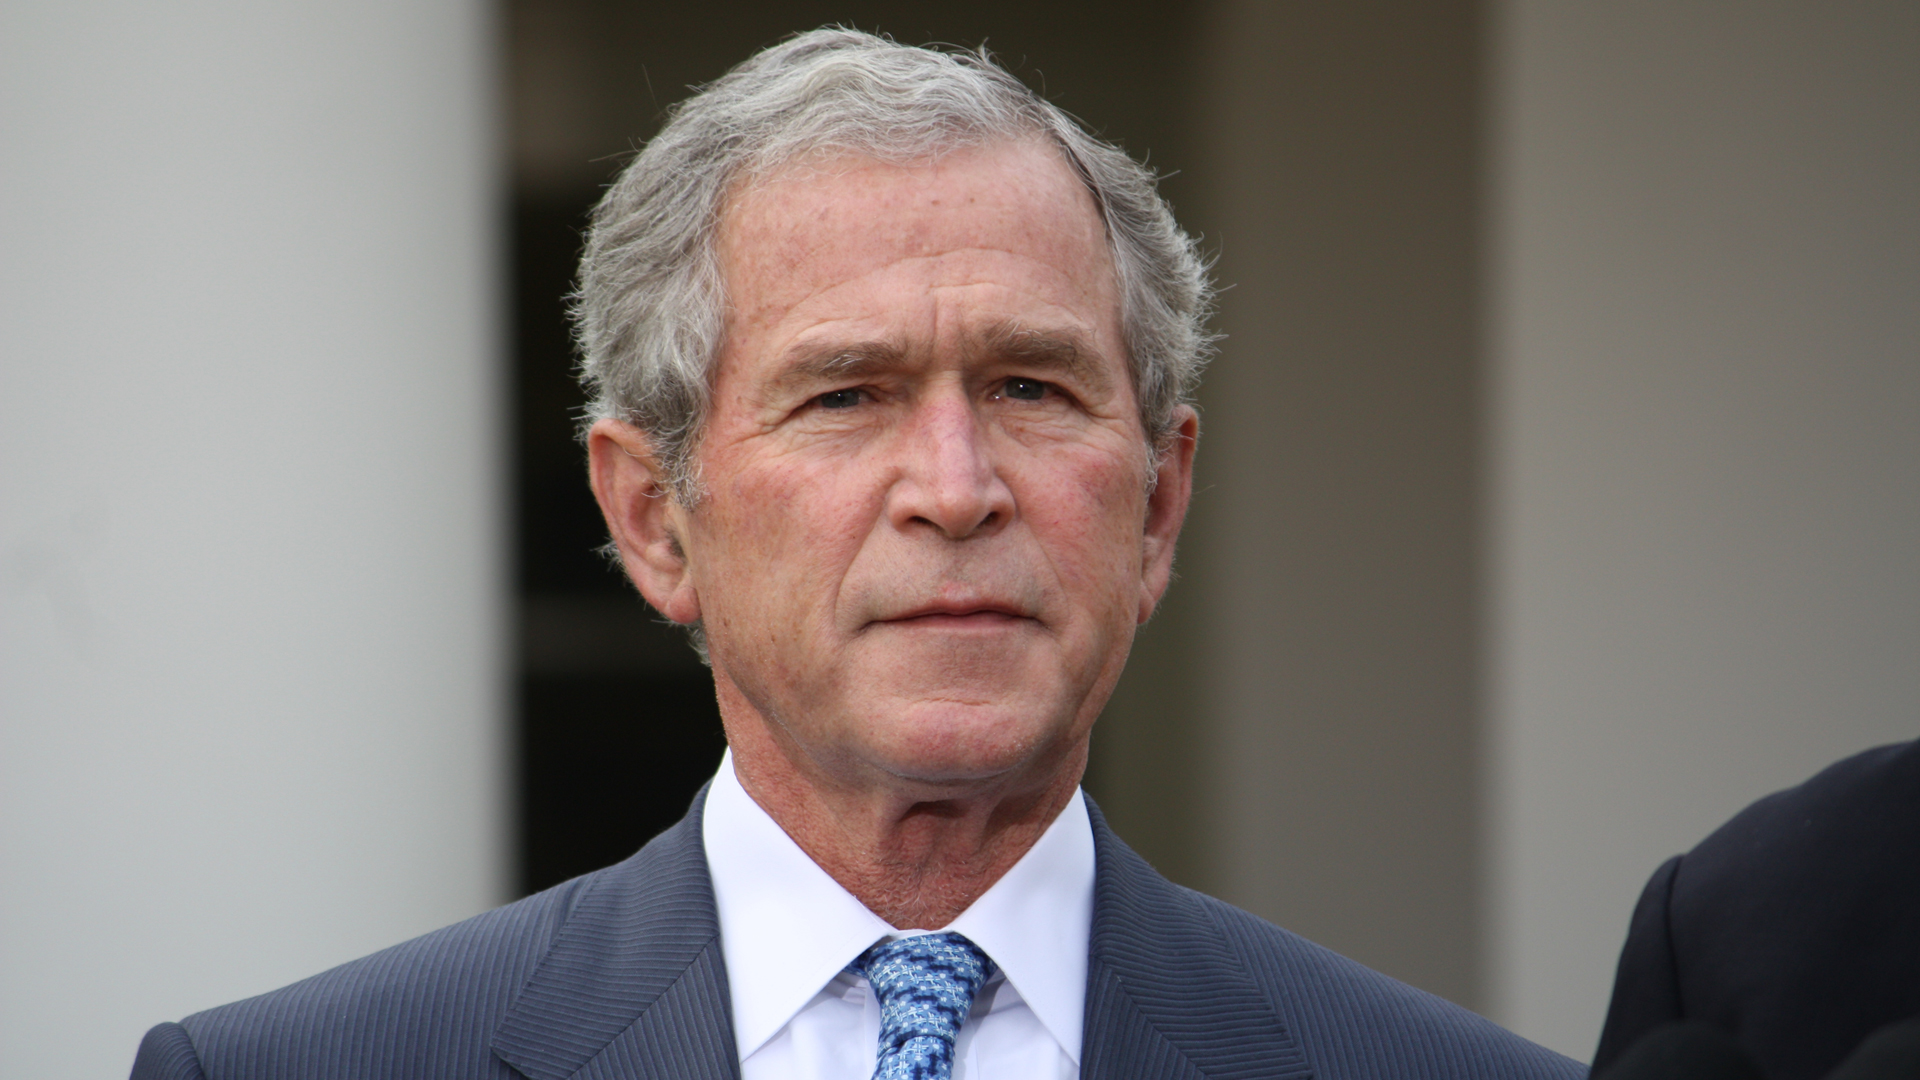 Man Arrested After Allegedly Threatening to Kill George W. Bush